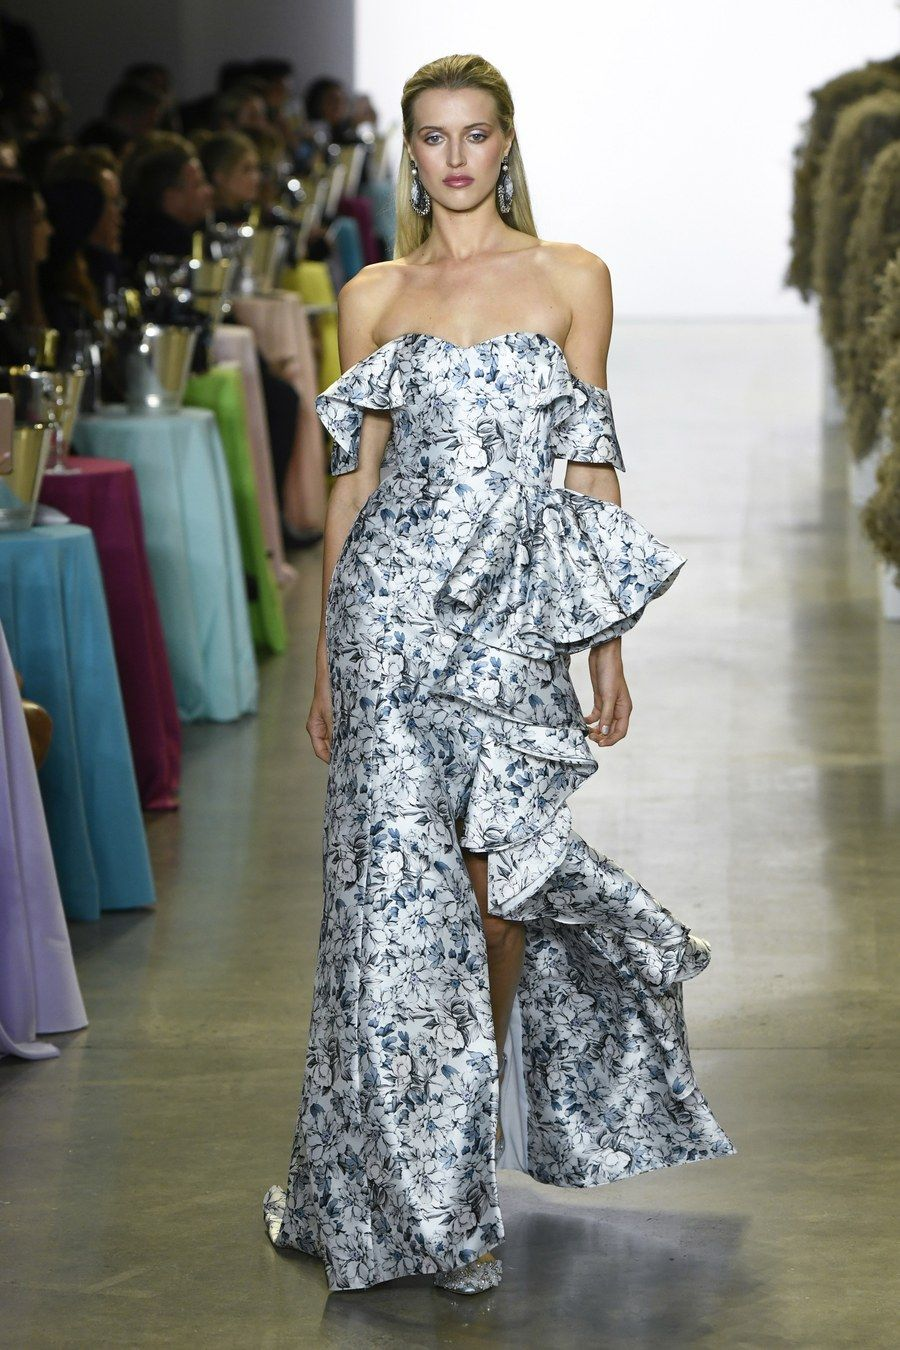 730b649cb008 Badgley Mischka Spring 2019 Ready-to-Wear collection, runway looks, beauty,  models, and reviews.